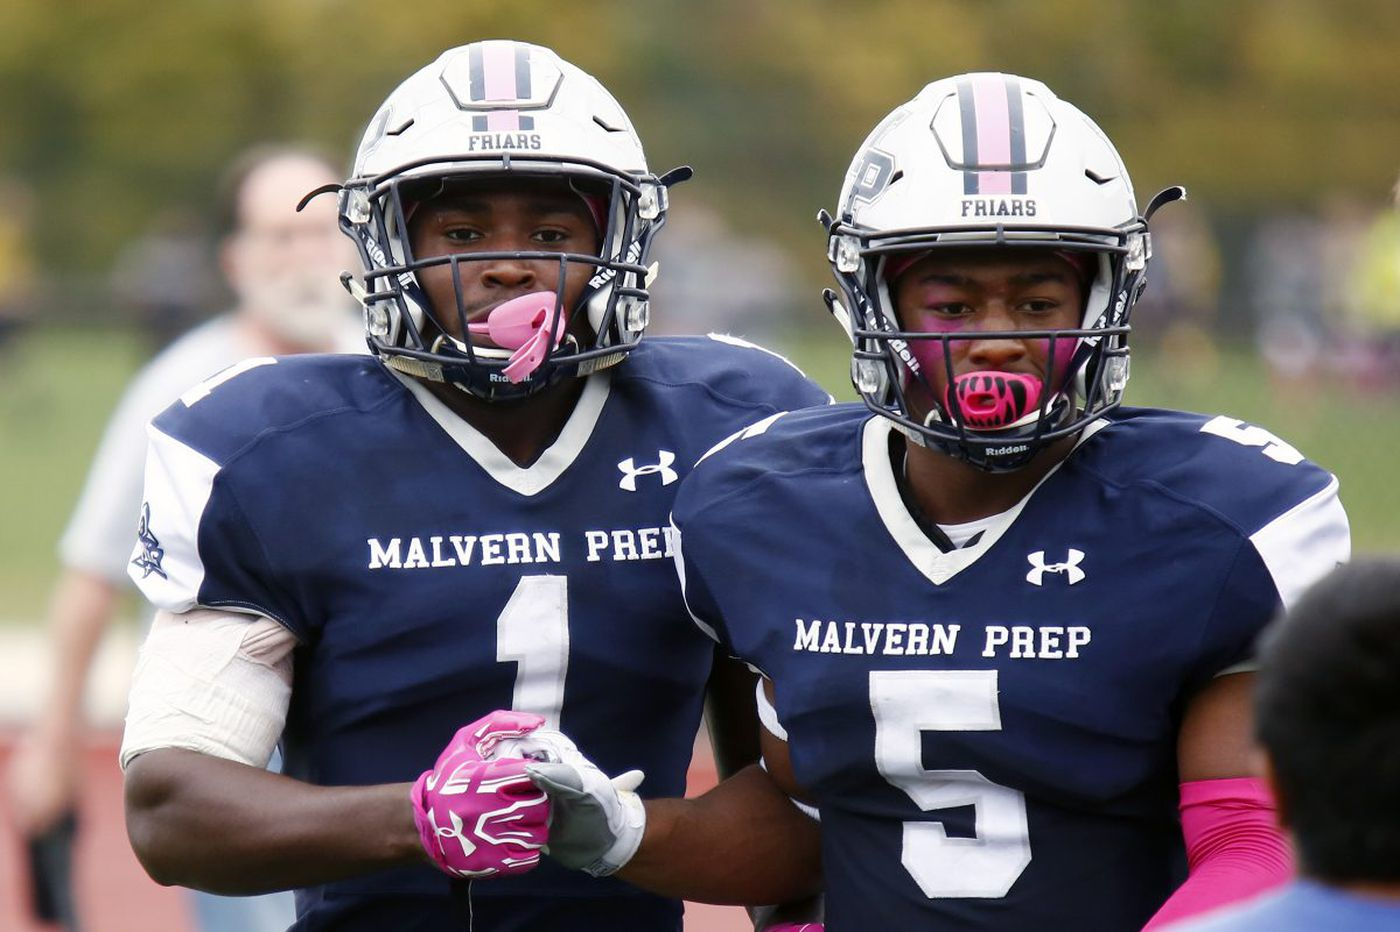 Malvern Prep shook off slow start to capture the Inter-Ac crown